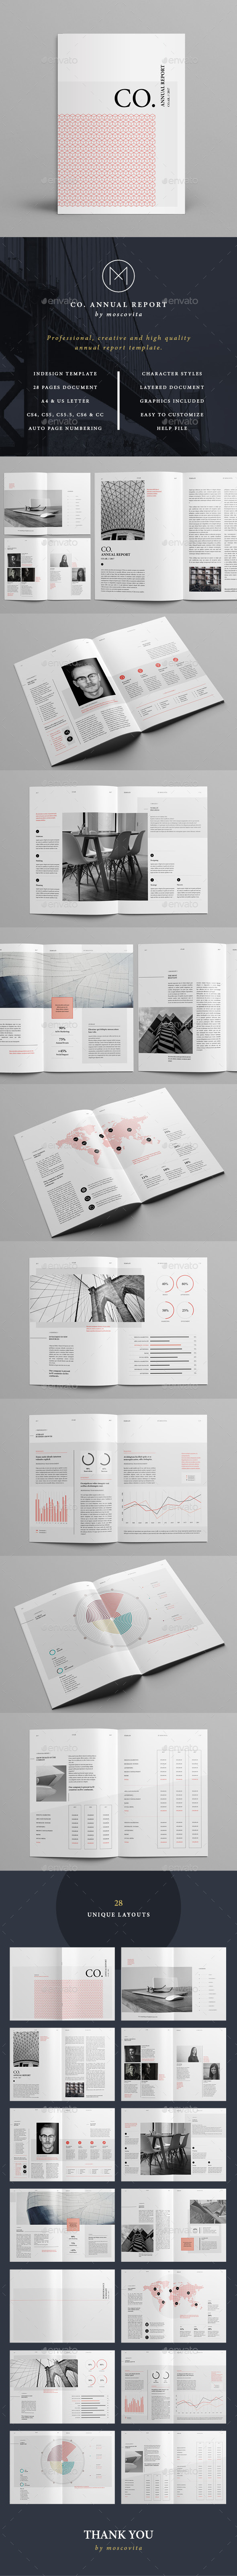 CO. Annual Report - Corporate Brochures